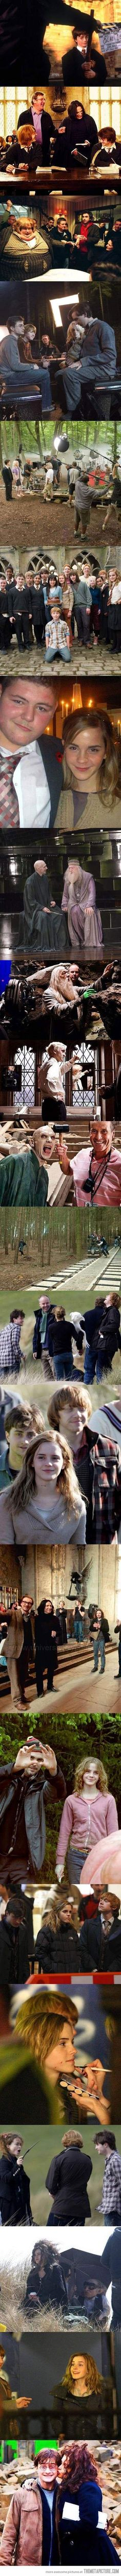 behind the scenes of the most epic movie series!!